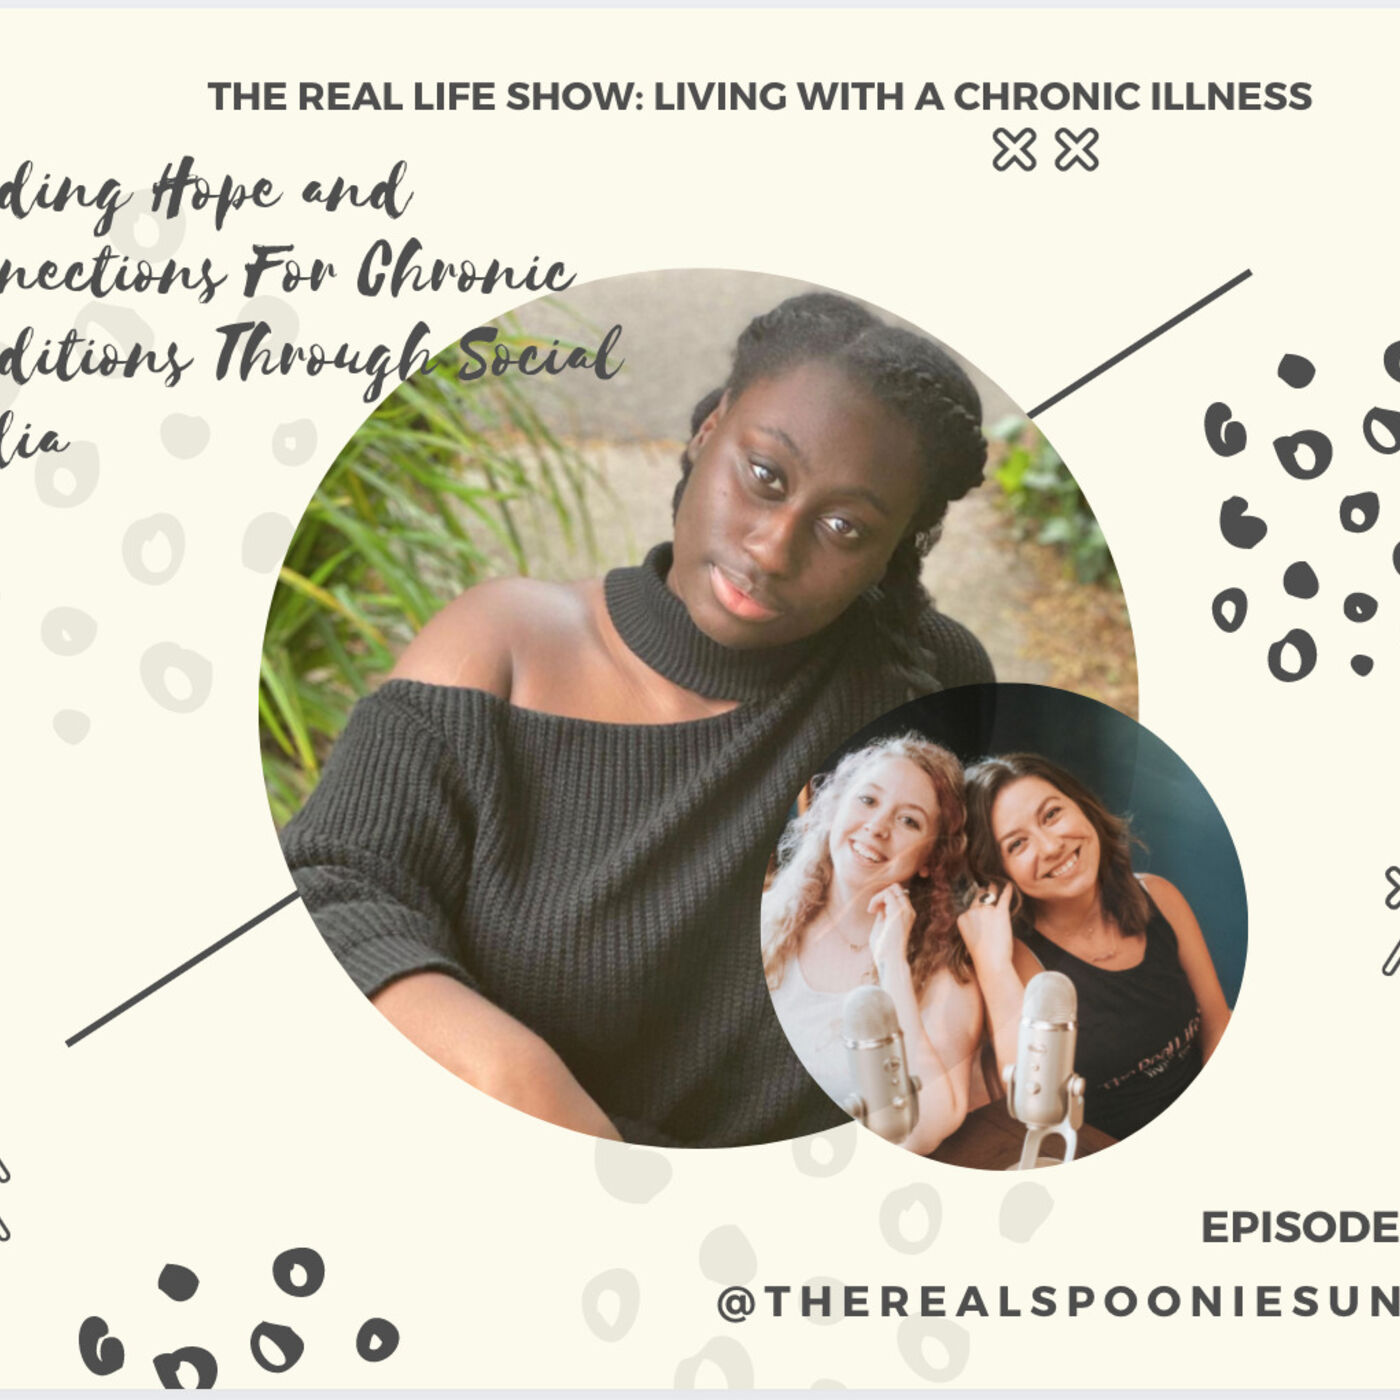 Finding Hope and Connections For Chronic Conditions Through Social Media: An Interview with Renee Dzandzo-Caesar